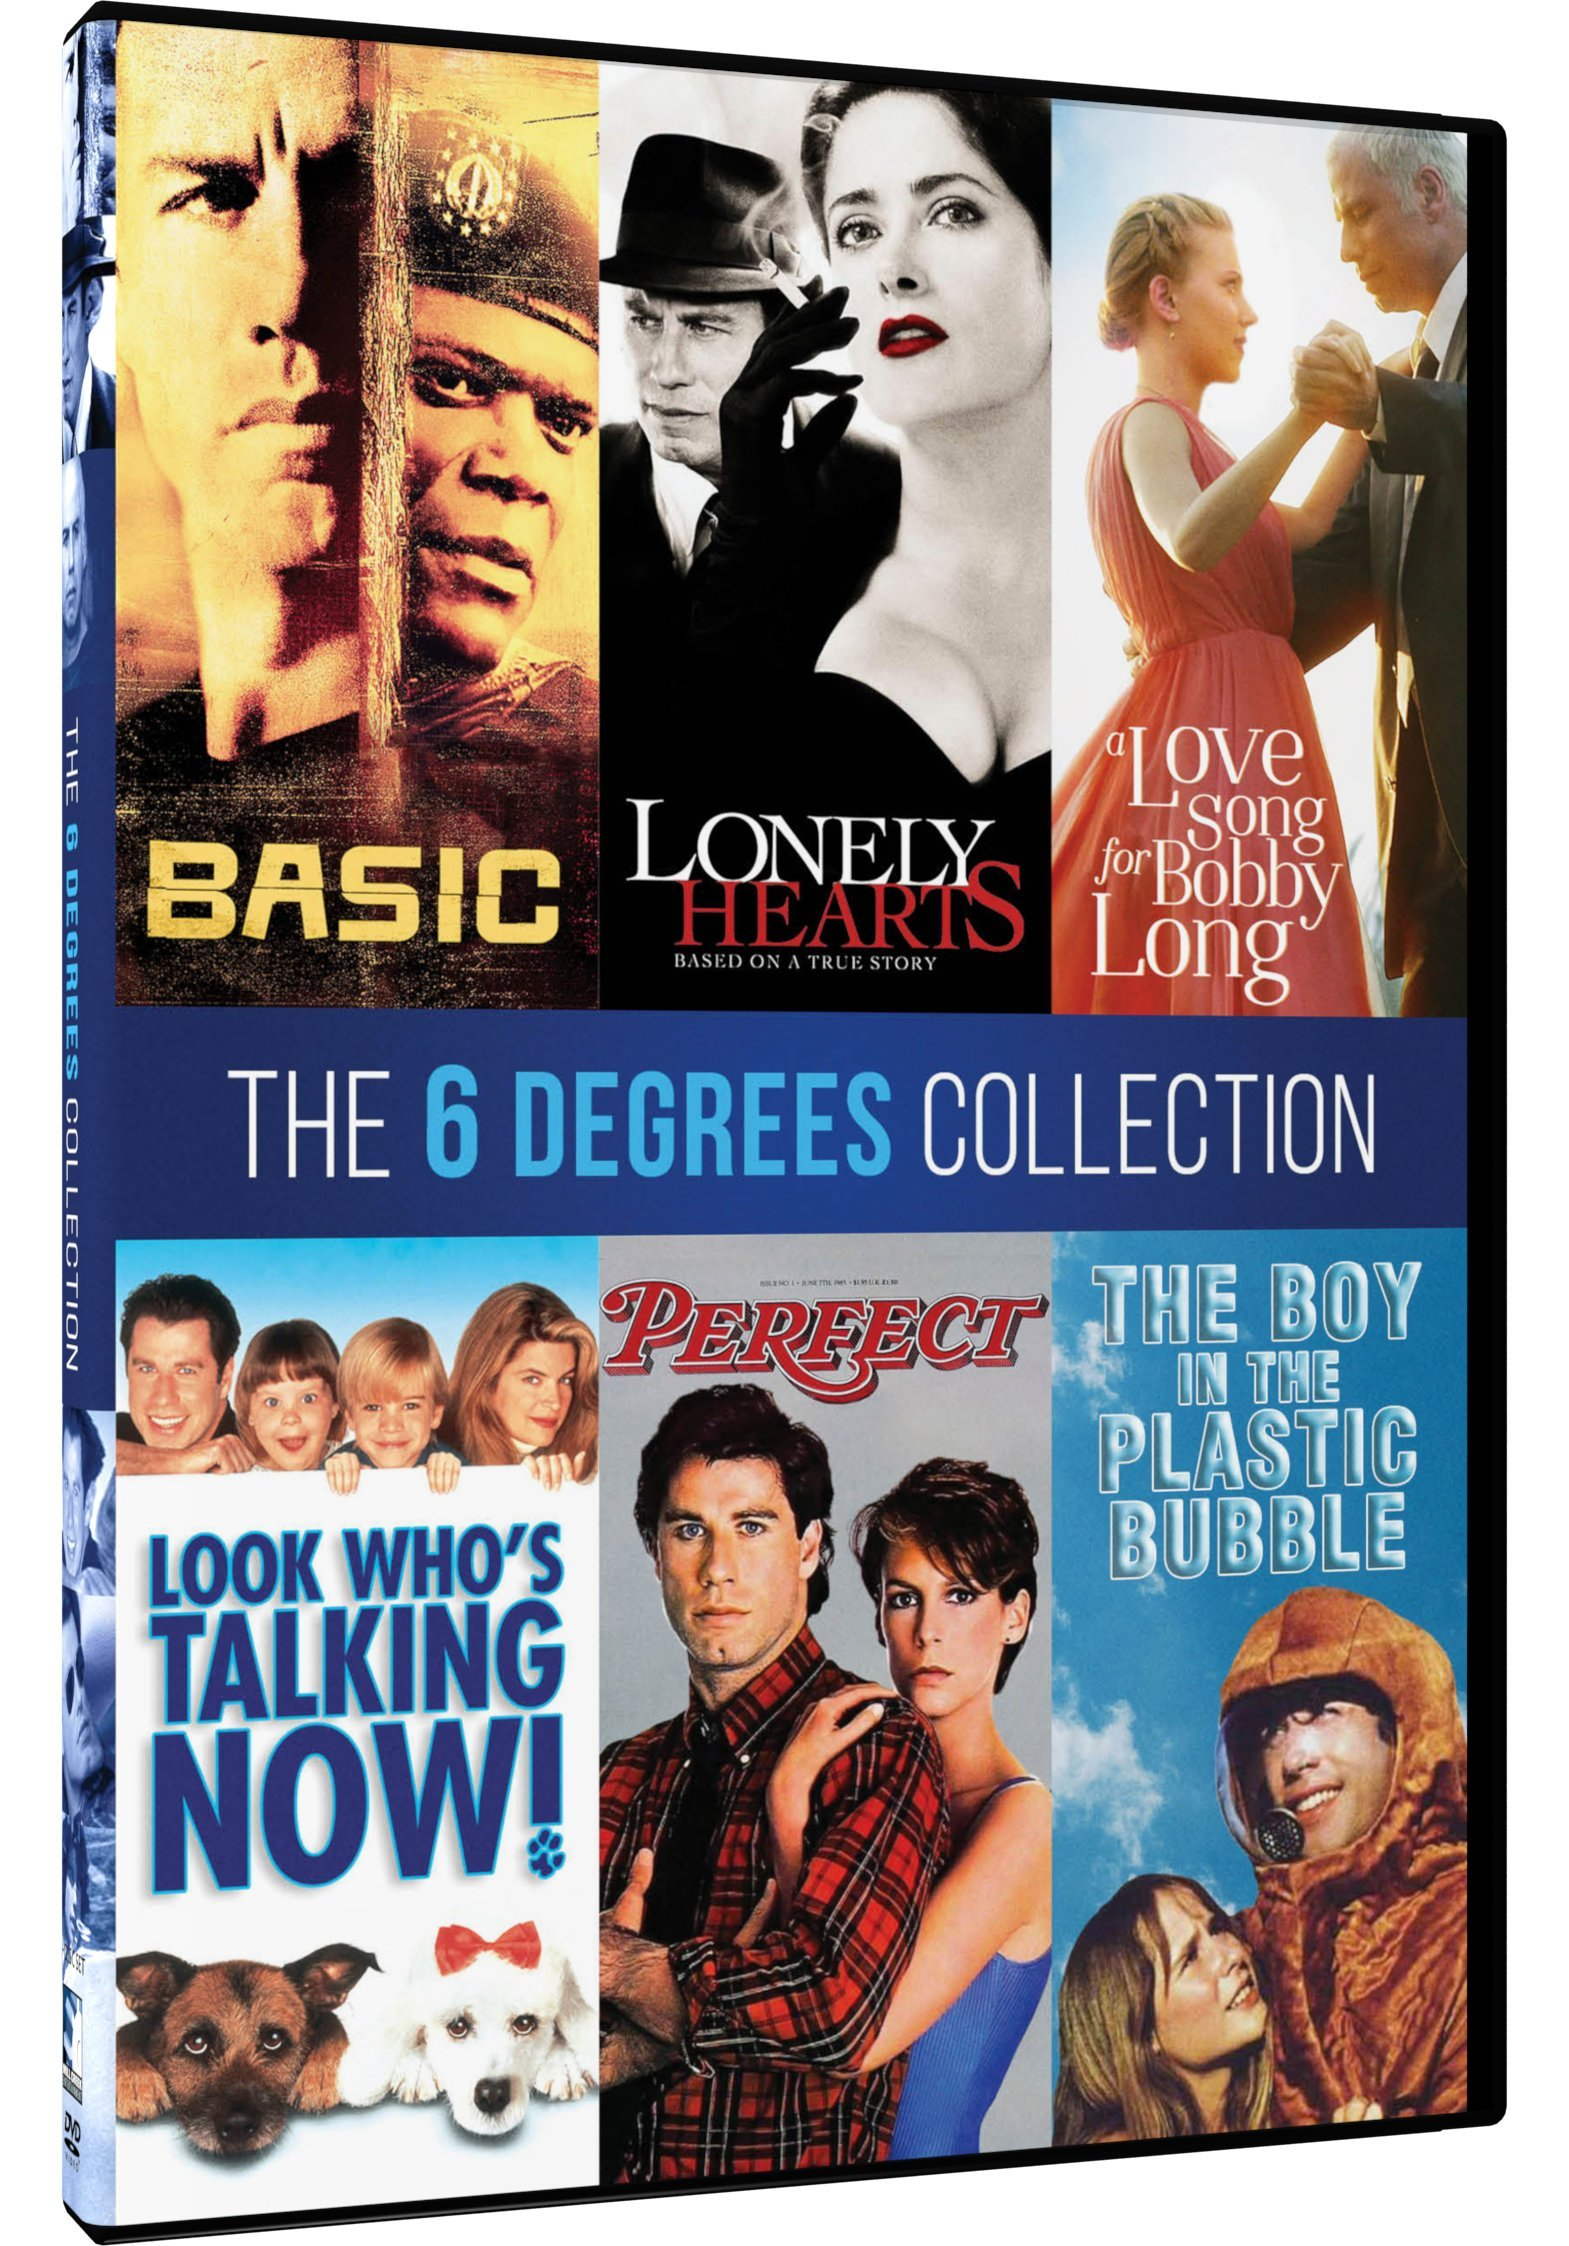 DVD : The 6 Degrees Collection (2 Pack, 2PC)